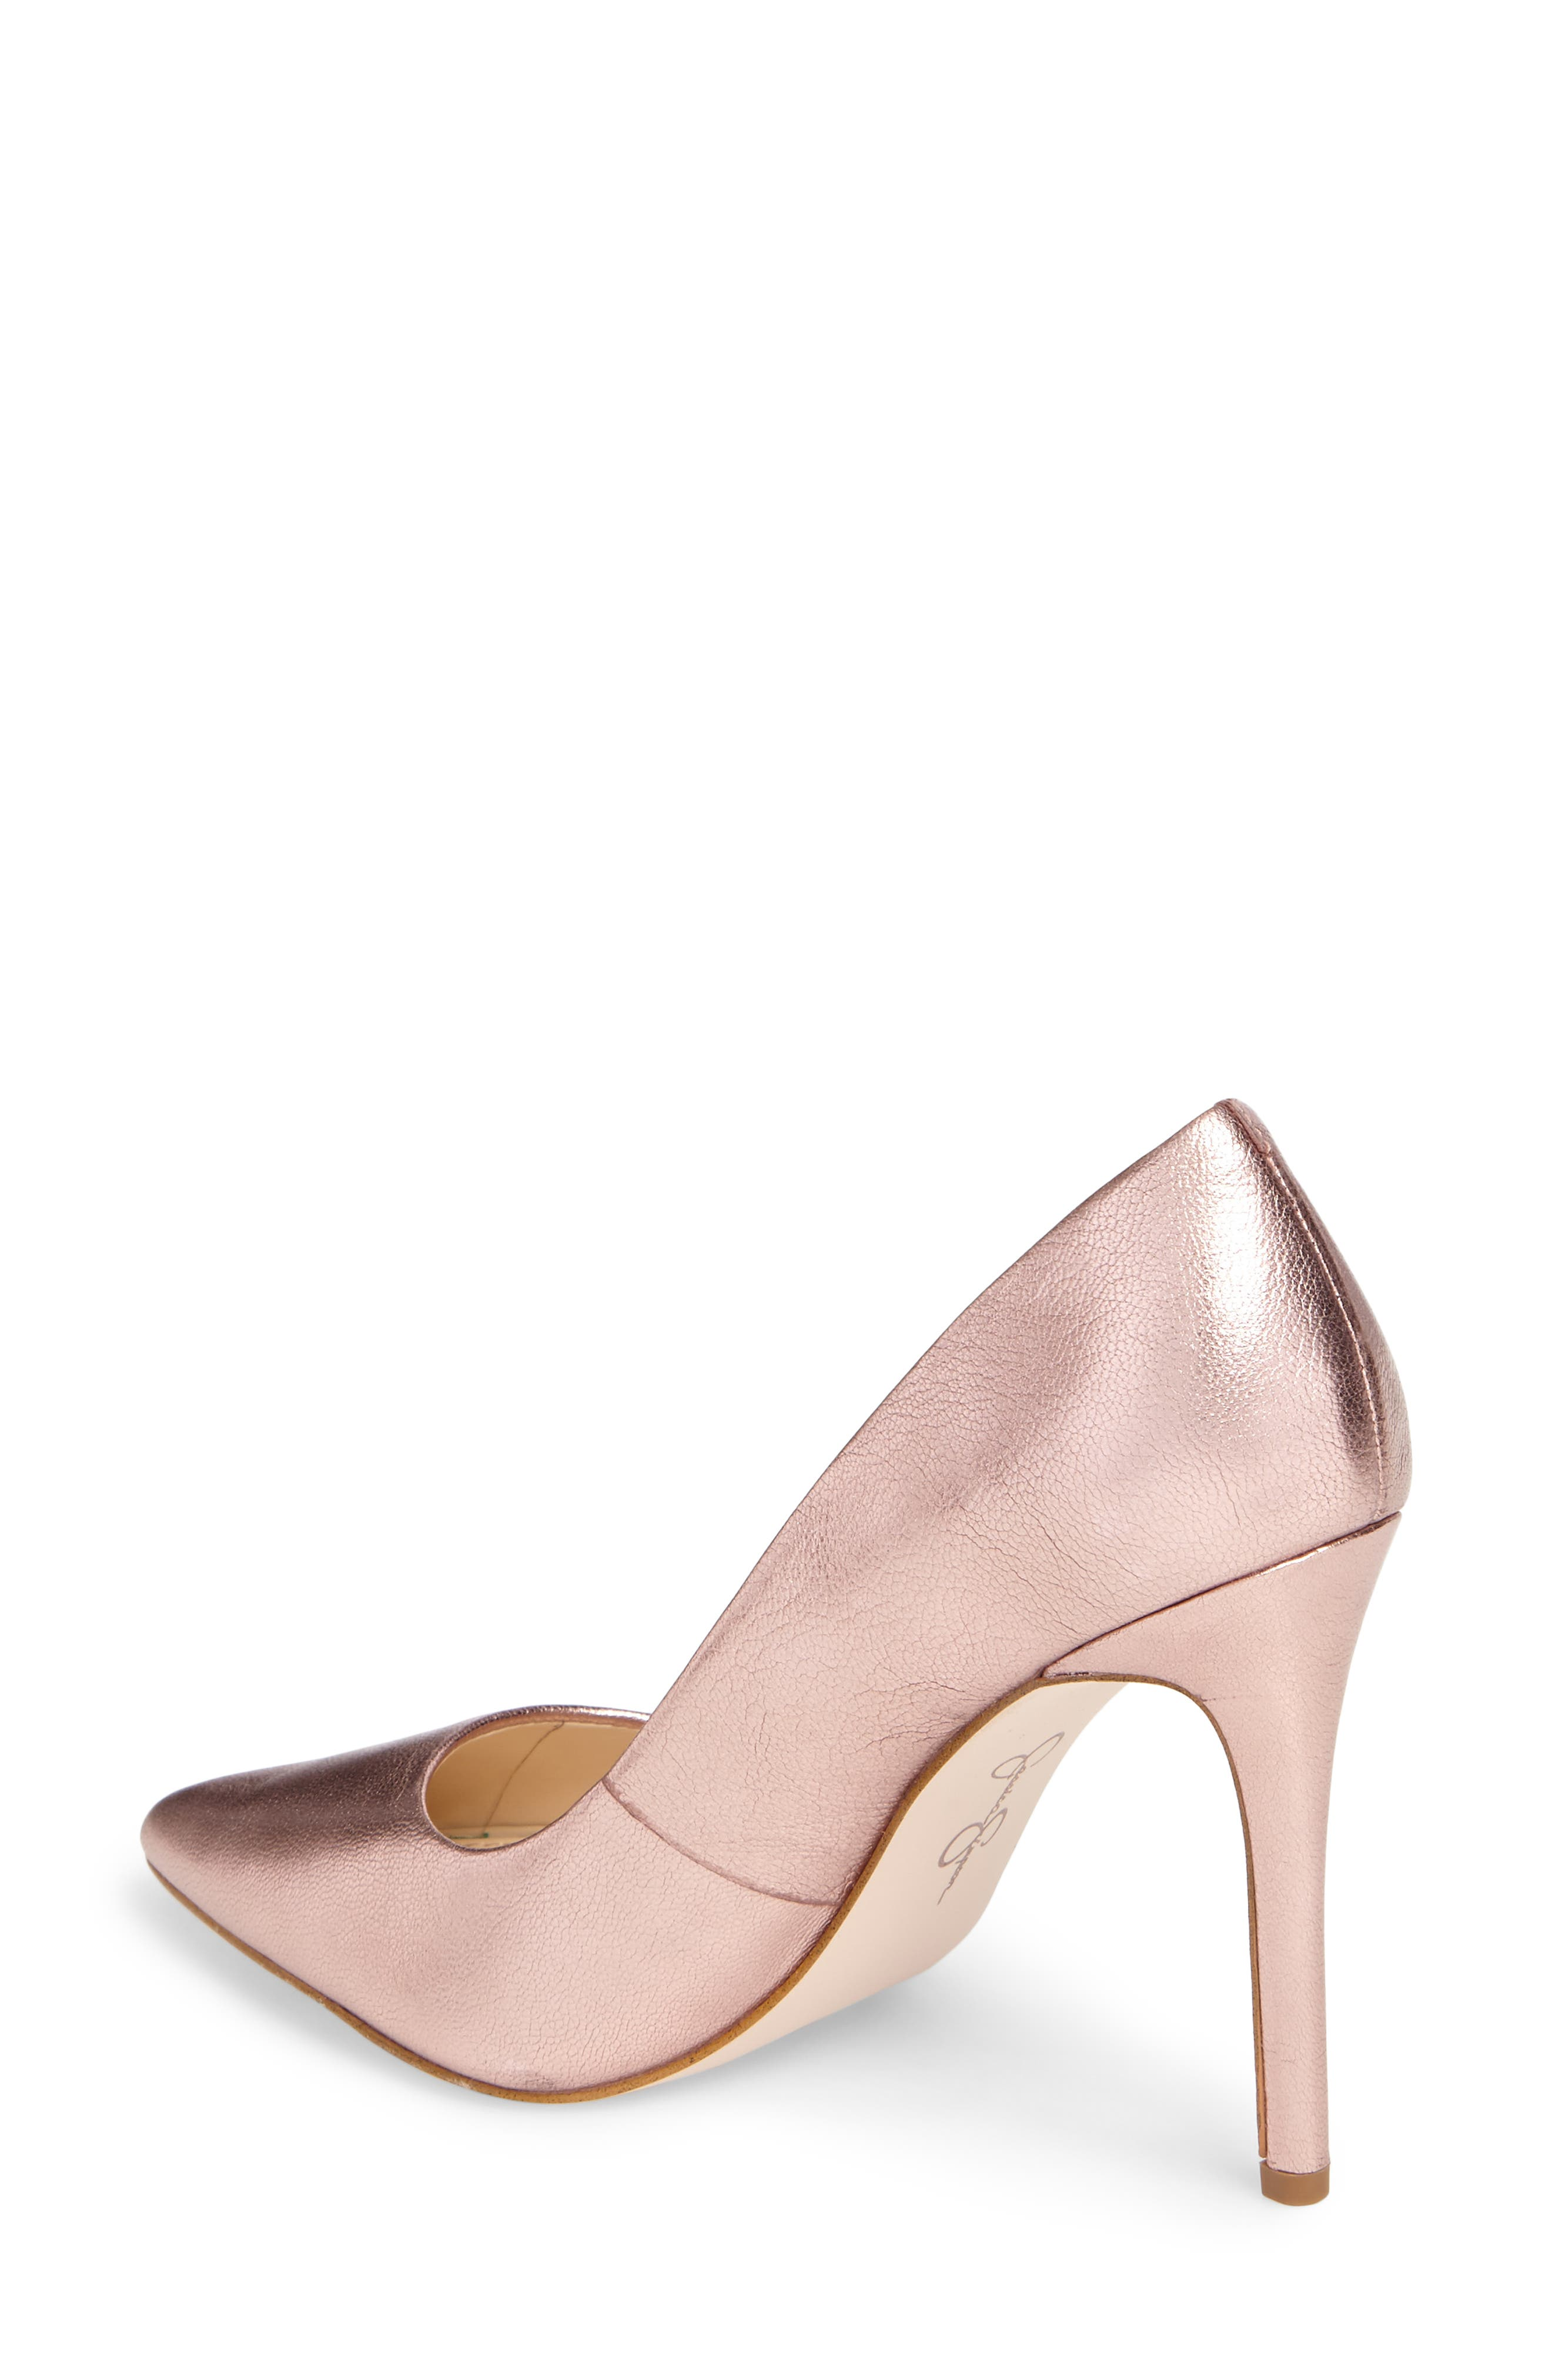 Praylee Pointy Toe Pump,                             Alternate thumbnail 2, color,                             Dolly Pink Leather